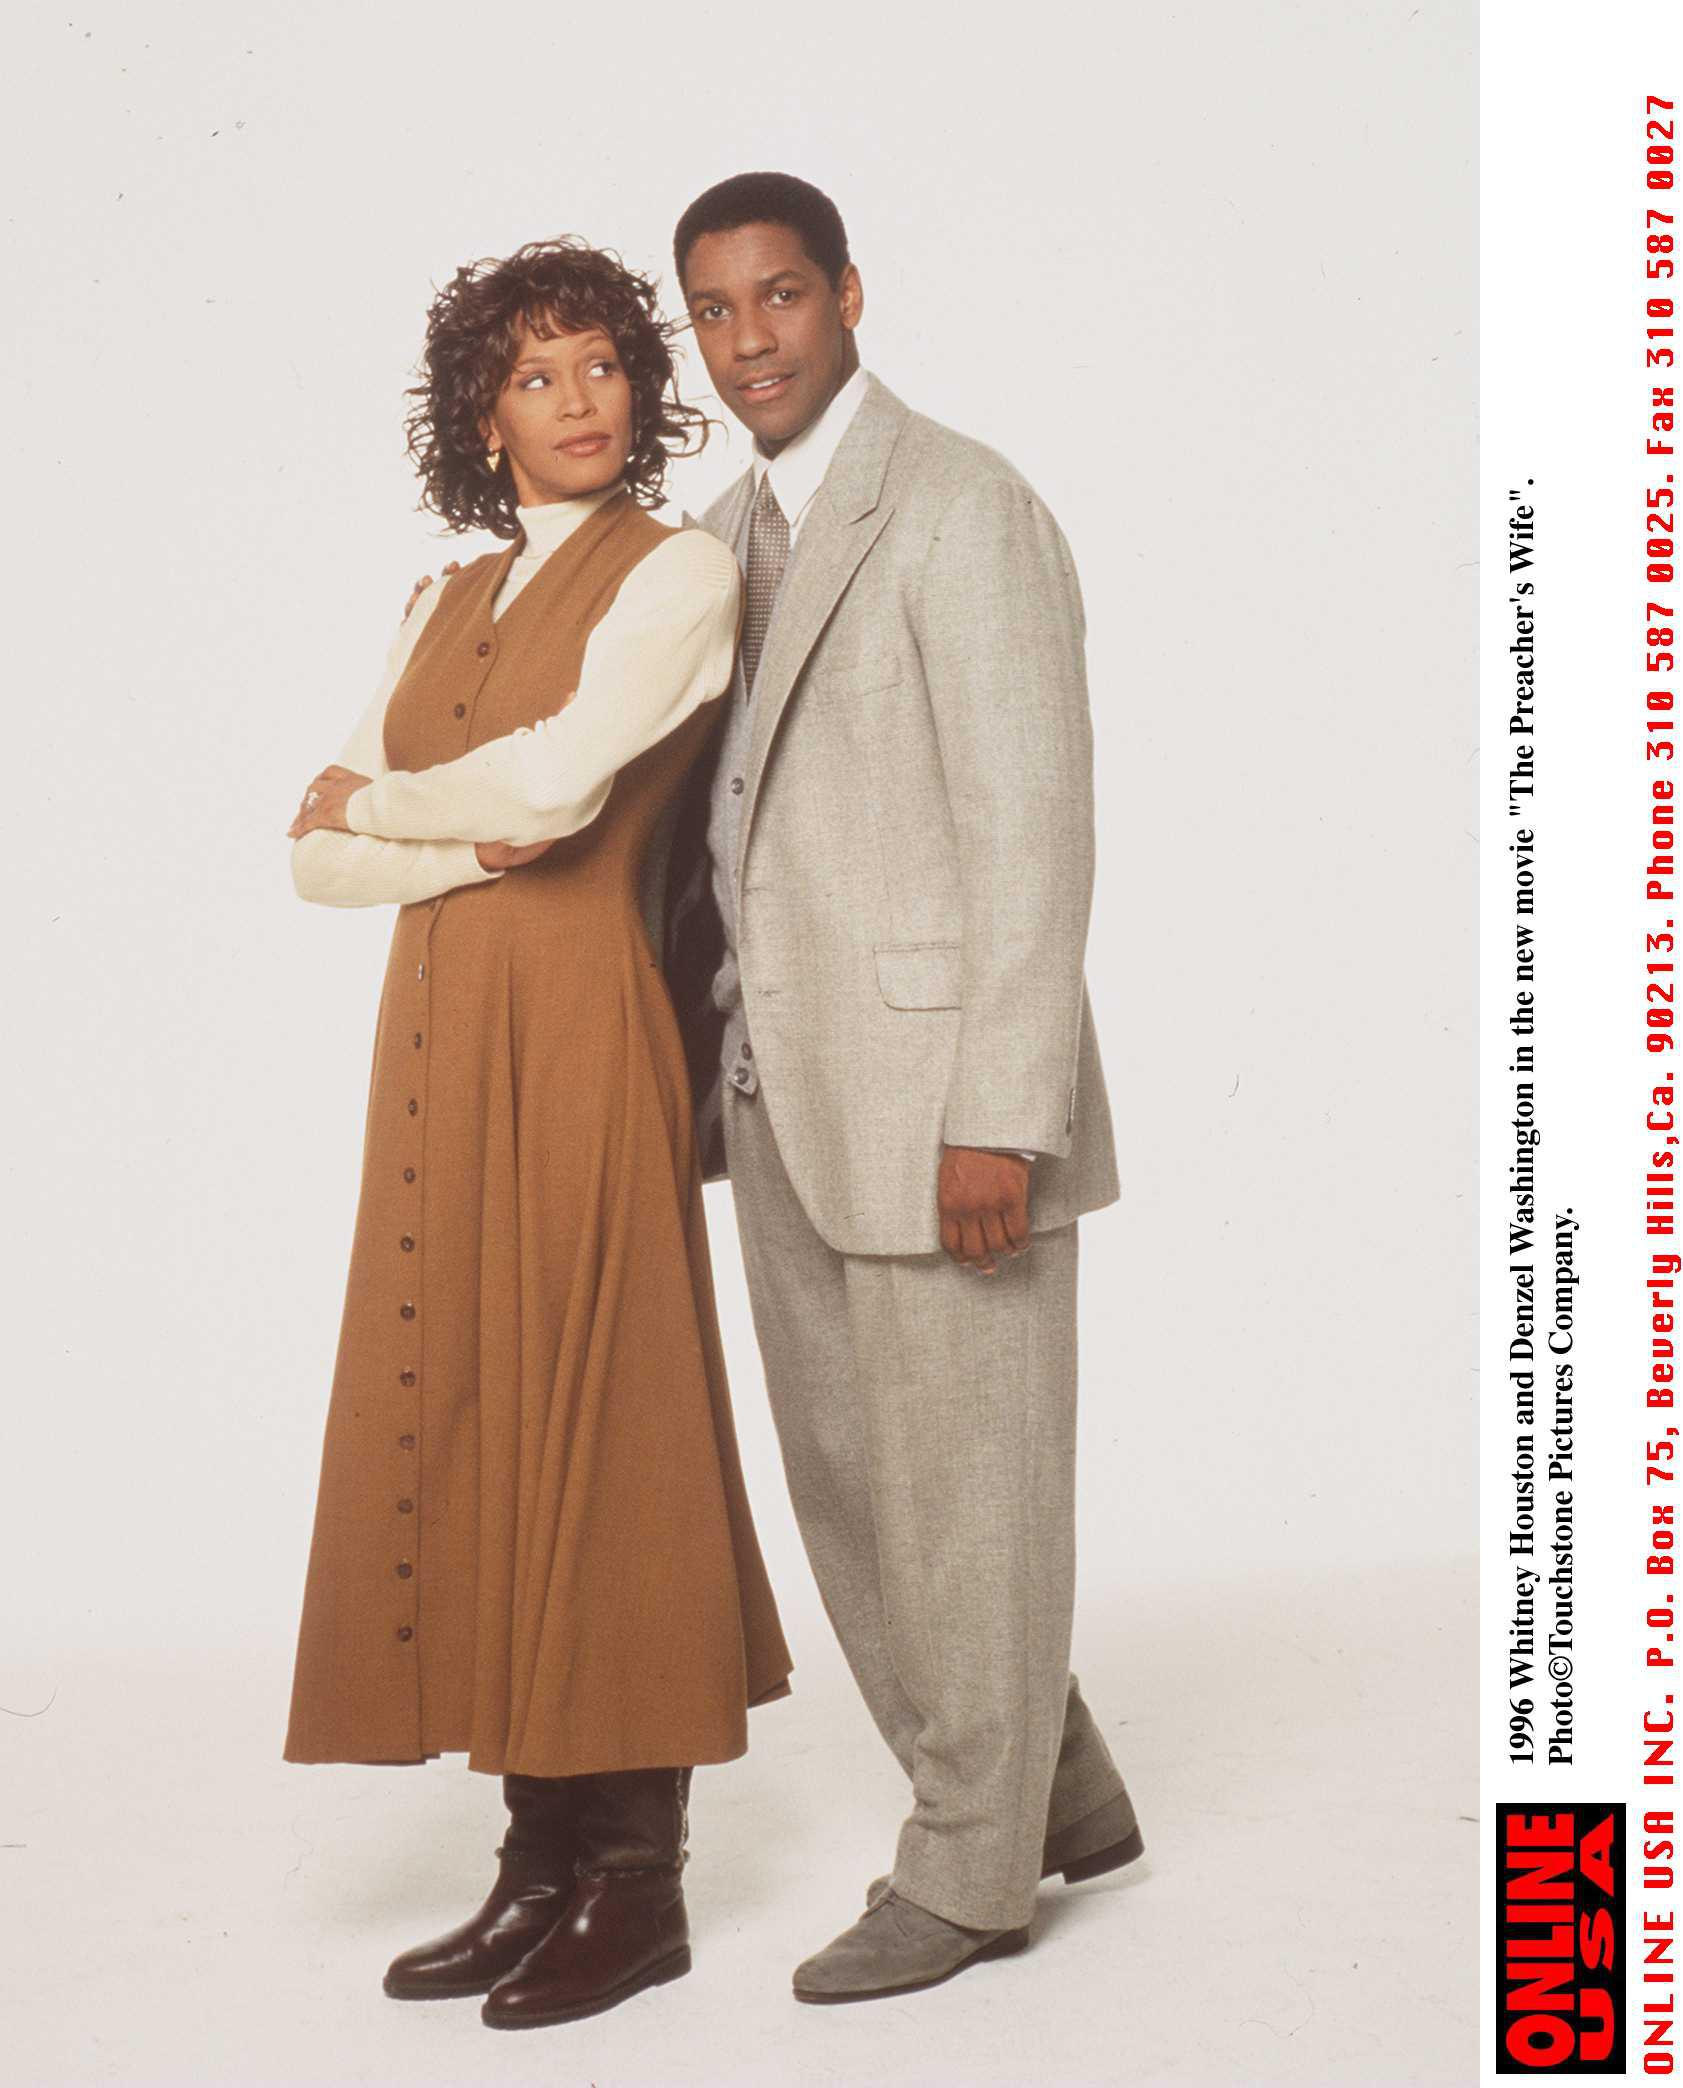 11/11/96 Whitney Houston and Denzel Washington in the new movie 'The Preachers Wife'